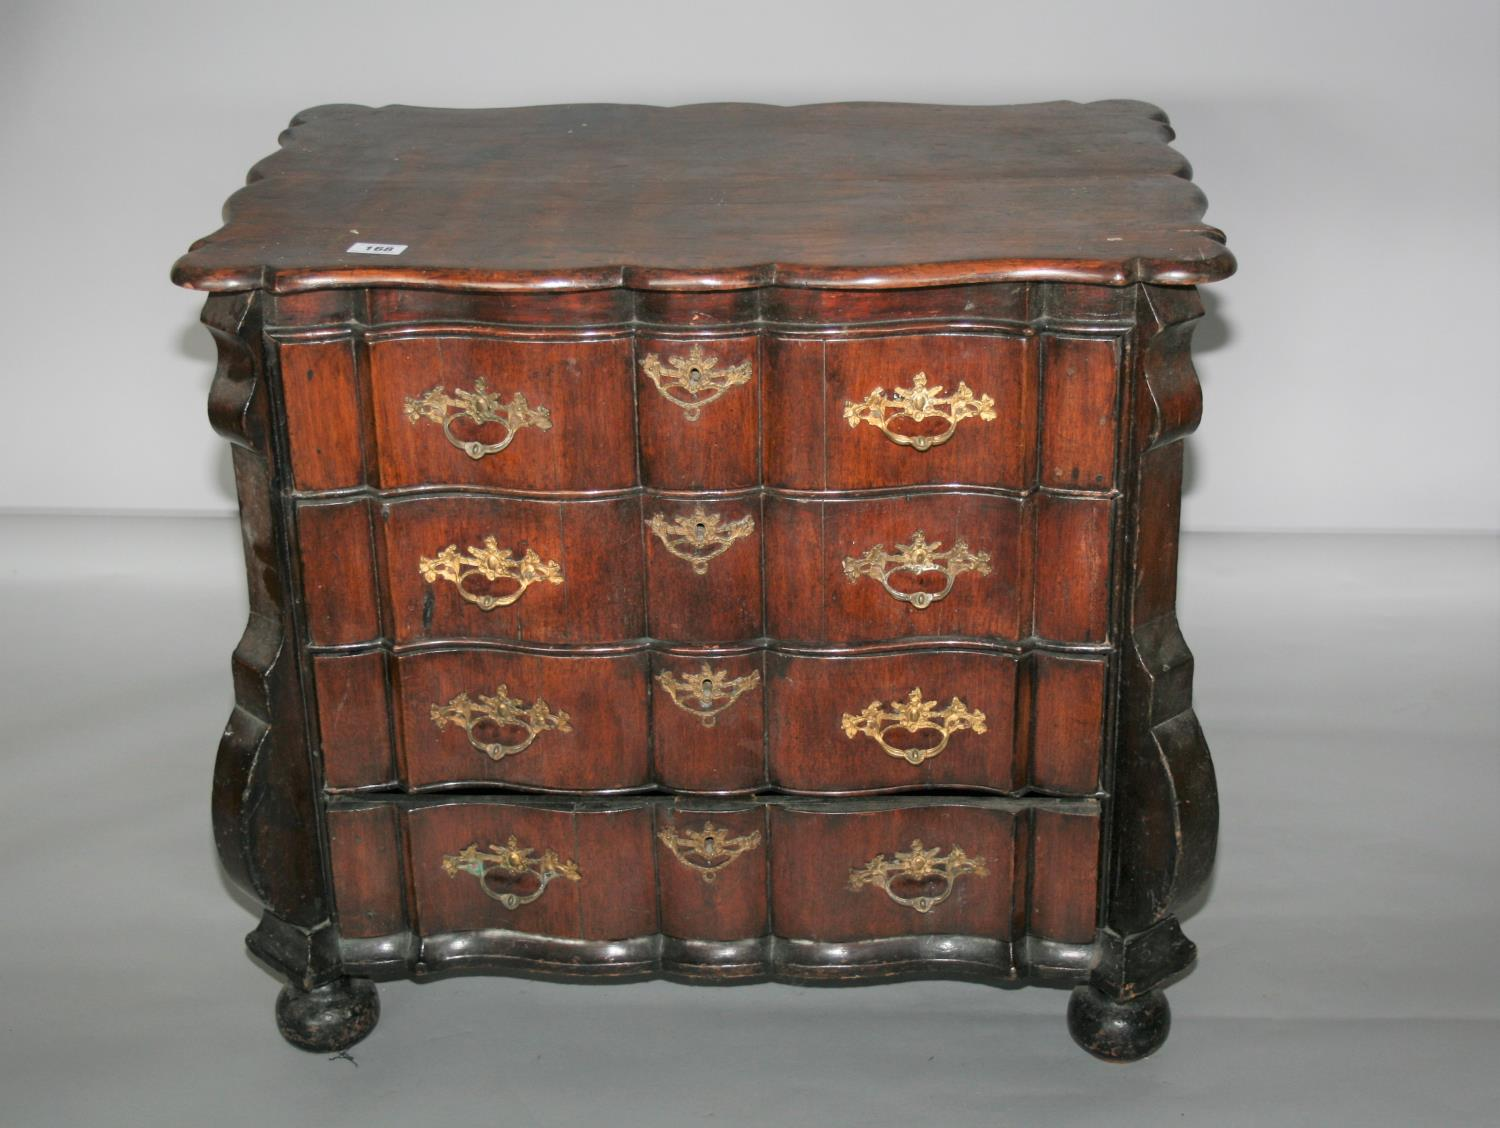 18th Century Continental chest of drawers with four long drawers. 88W x 80H x 55D